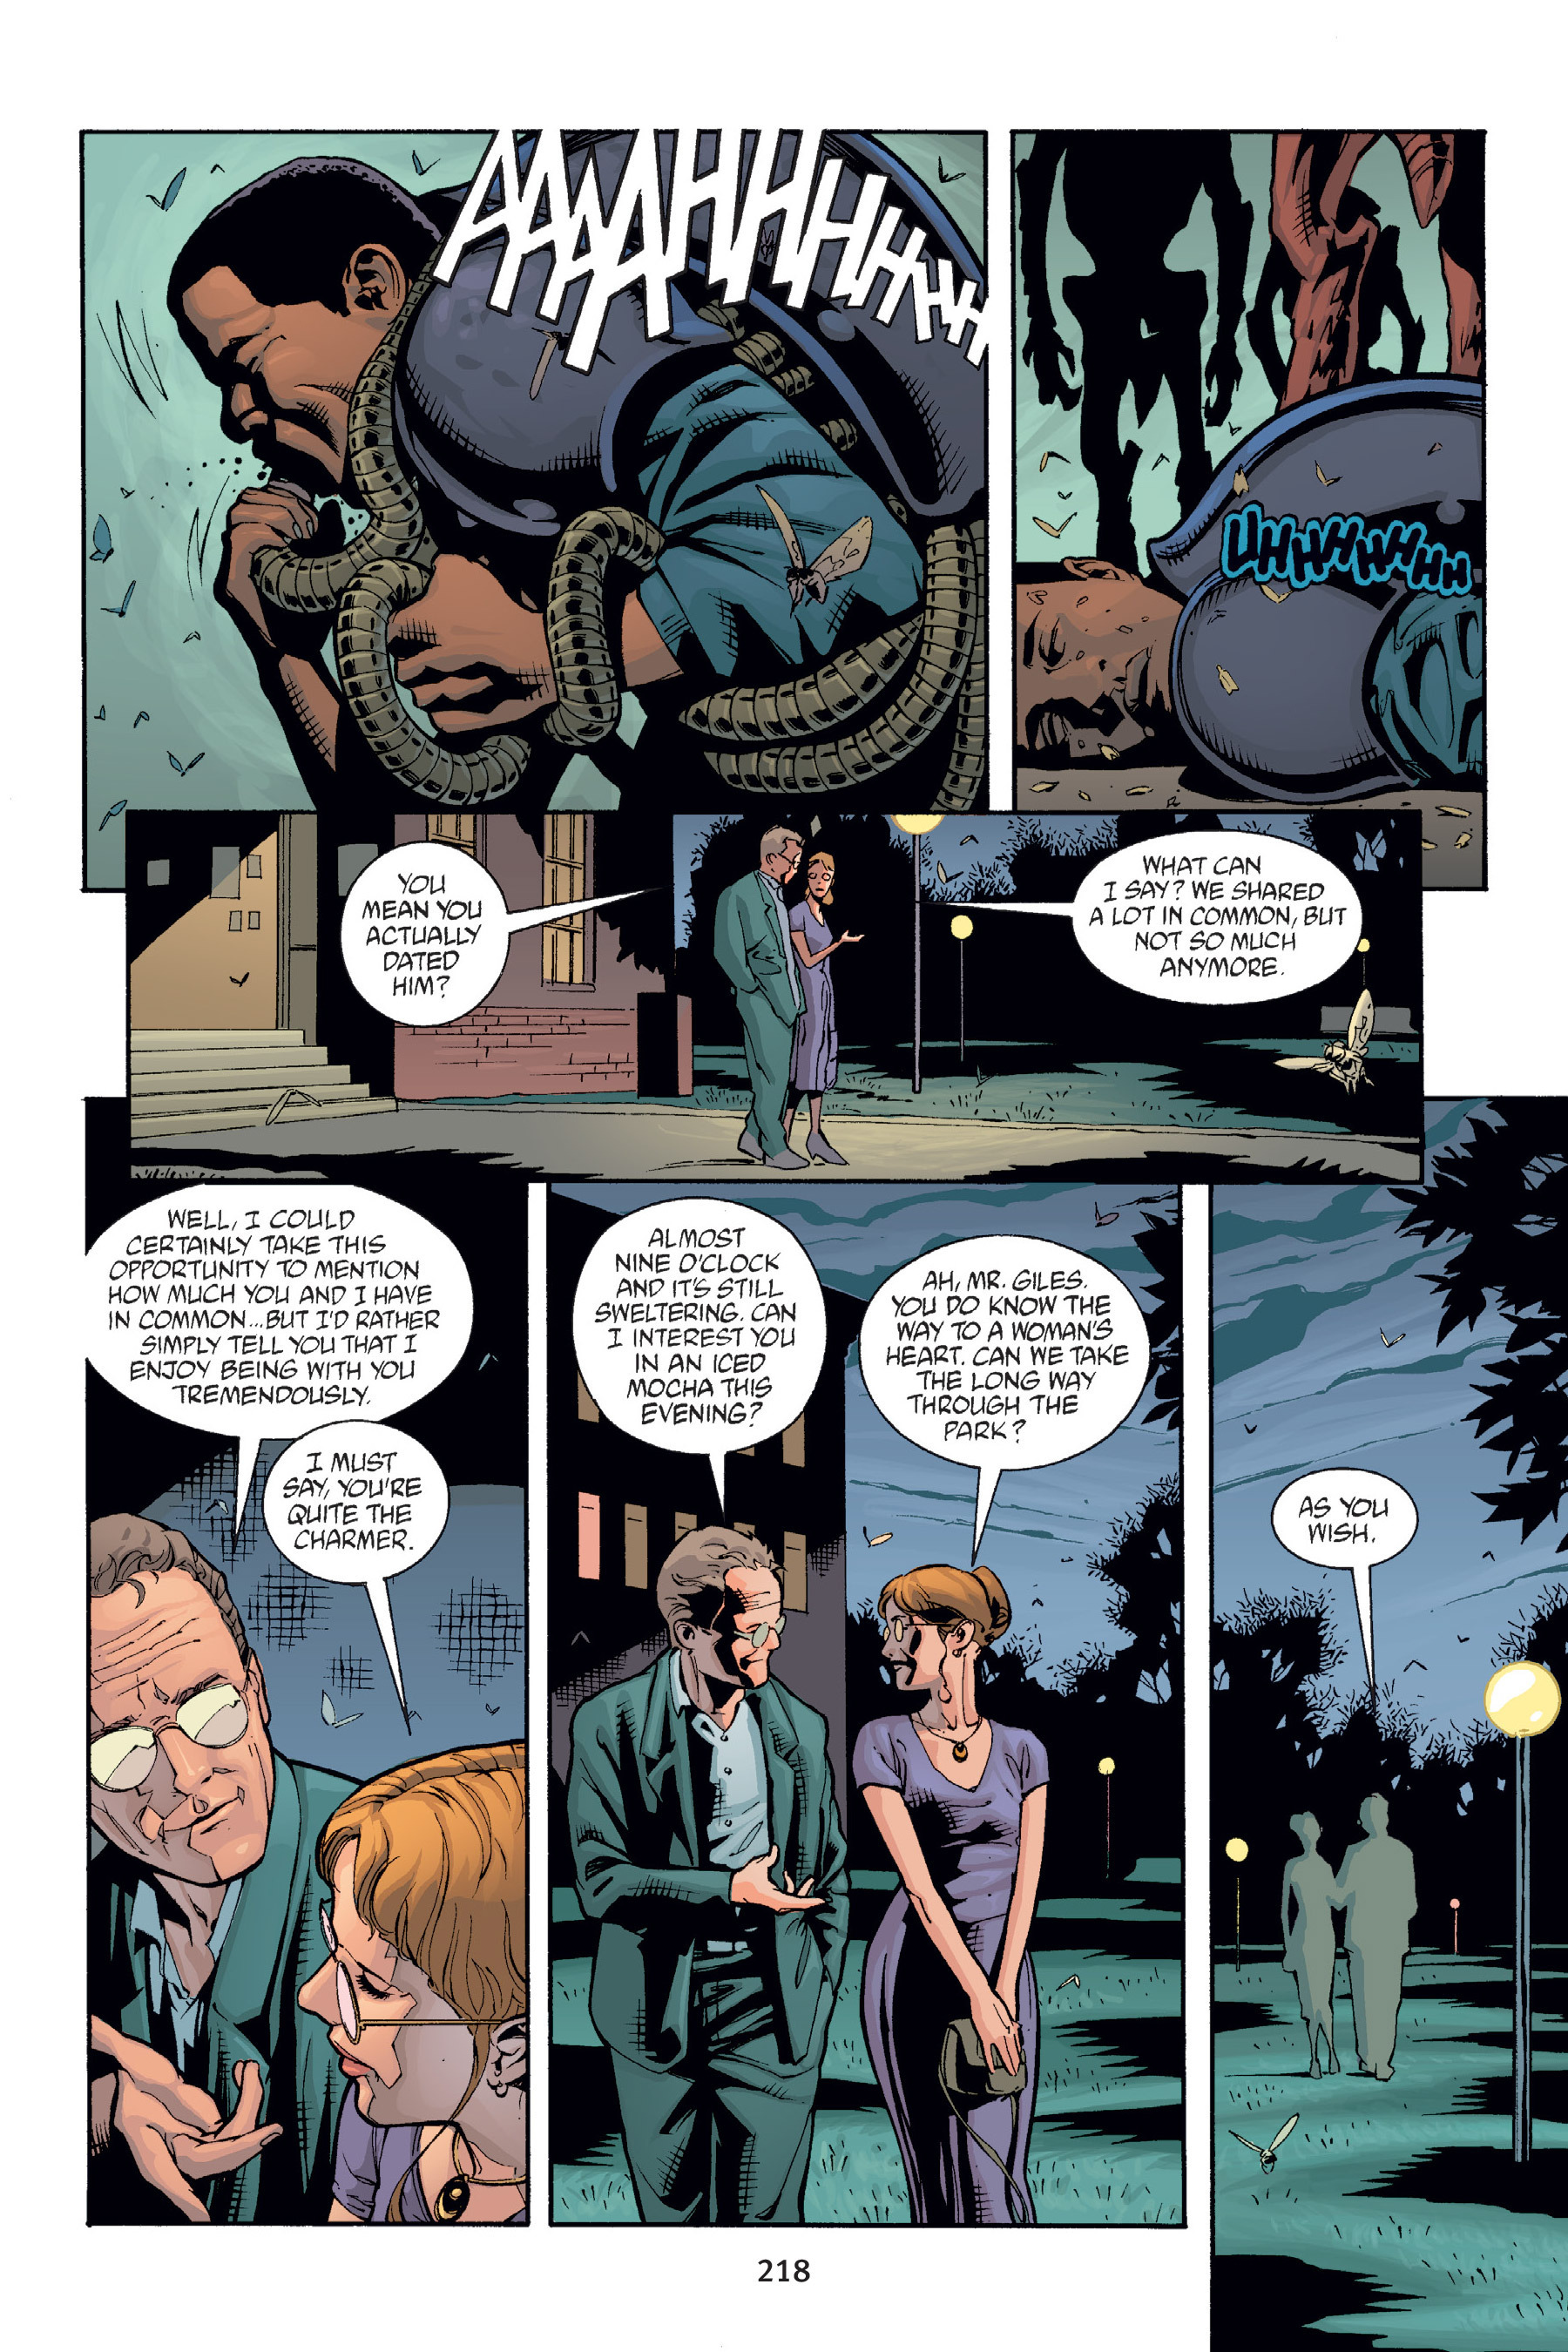 Read online Buffy the Vampire Slayer: Omnibus comic -  Issue # TPB 6 - 217